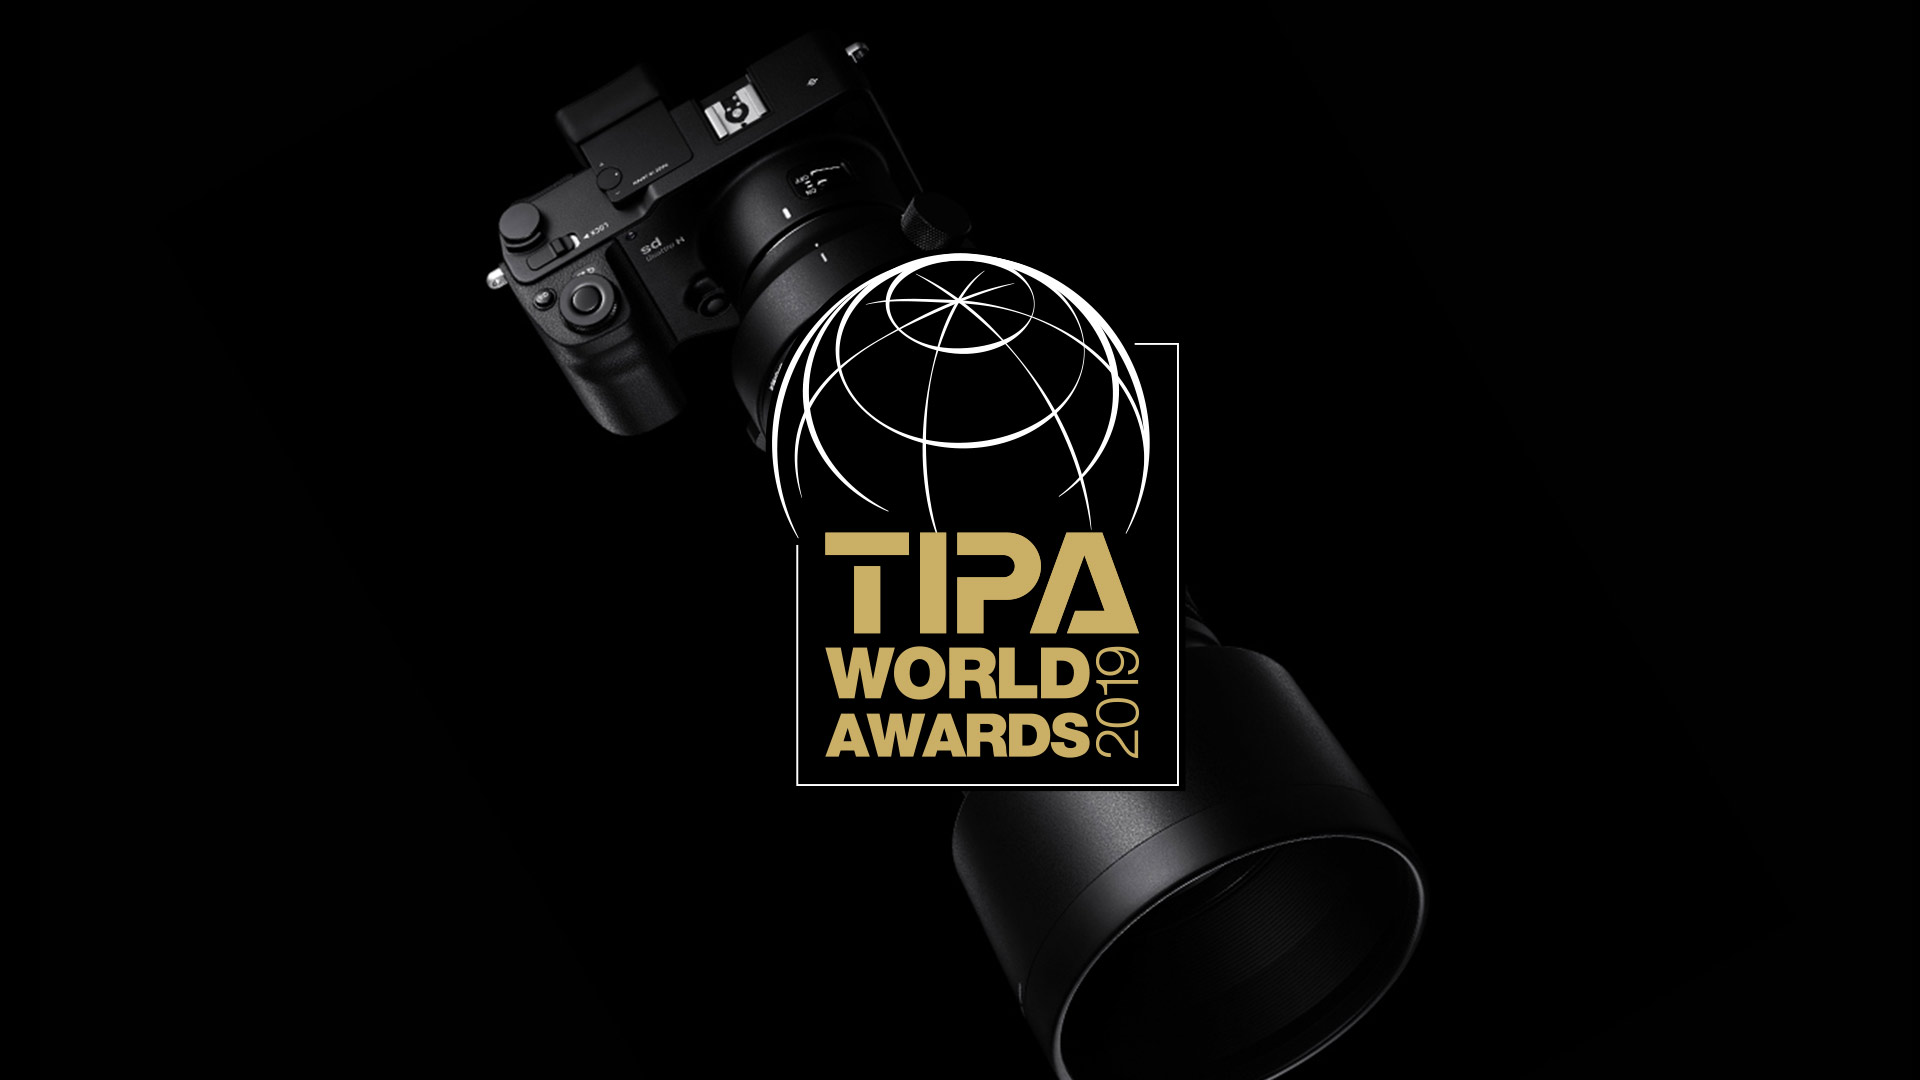 SIGMA TIPA World Awards 2019